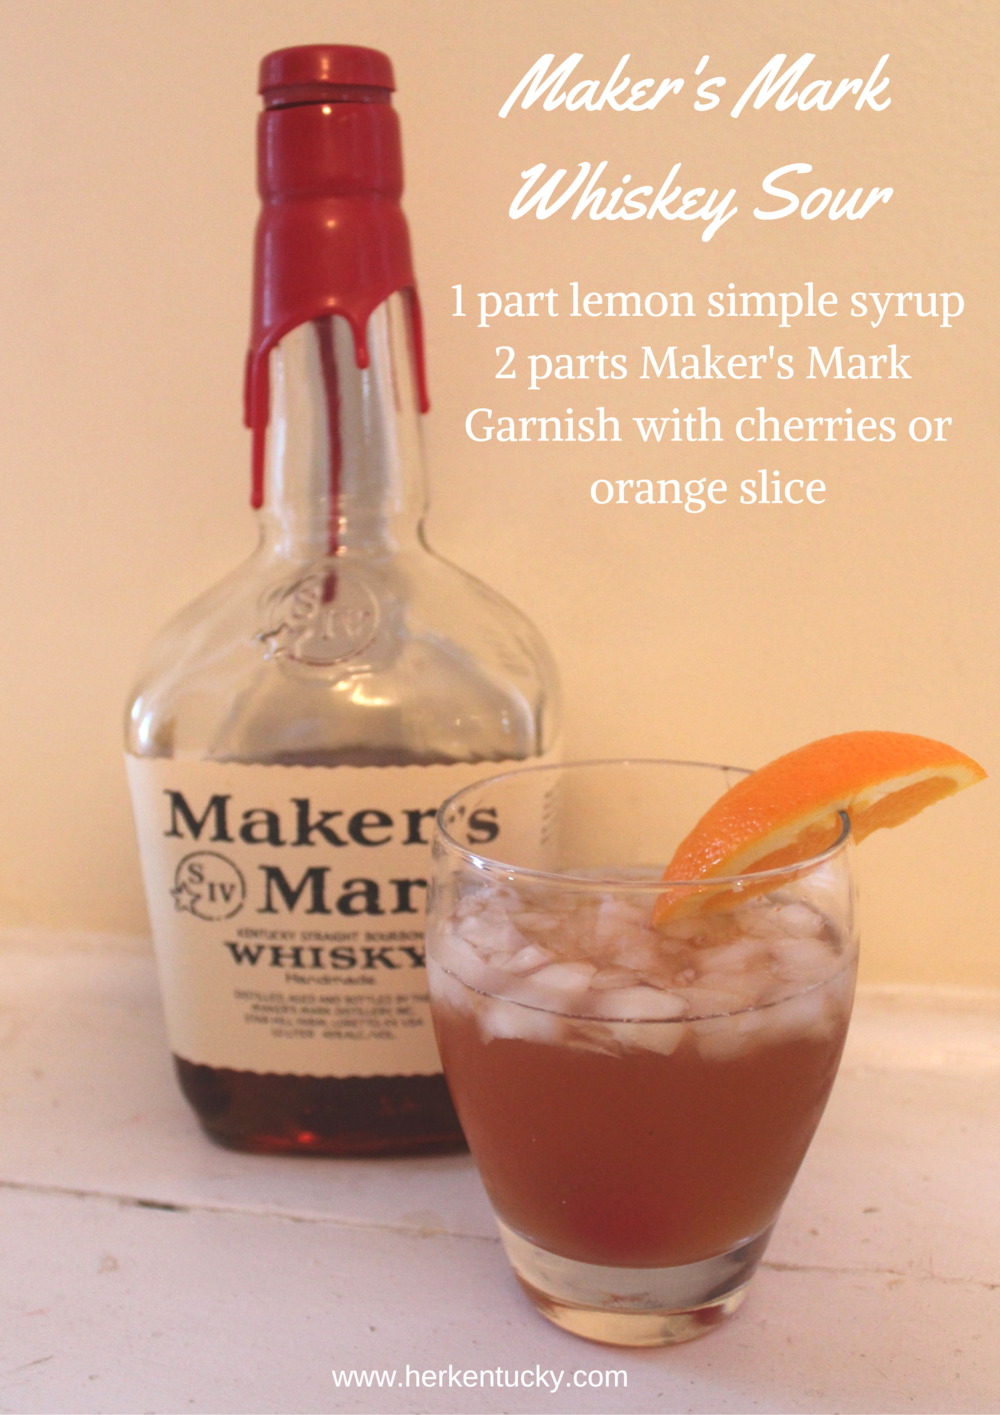 Maker's Mark Whiskey Sour